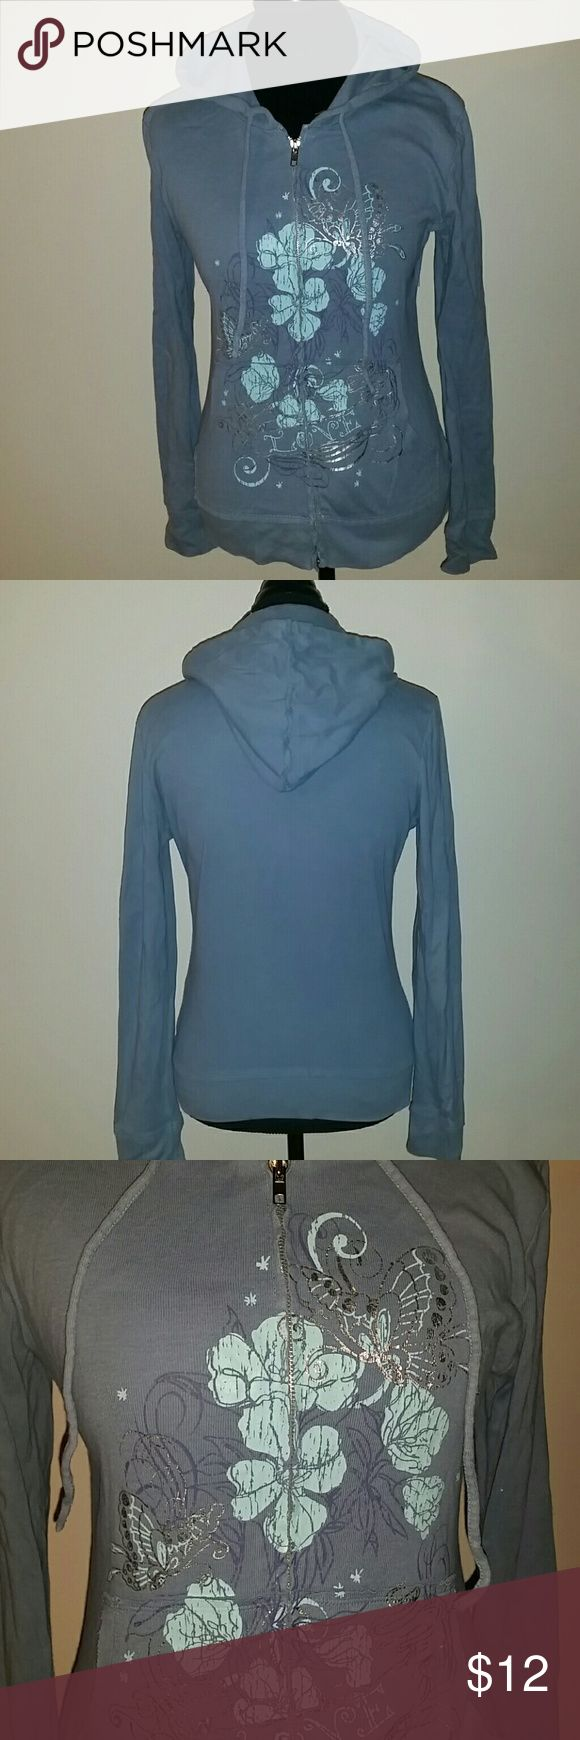 Dusty Blue Zip Up Dusty blue zip up with silver and blue floral/butterfly design, drawstring hoodie, front pockets. Gently worn, good condition. lei Tops Sweatshirts & Hoodies